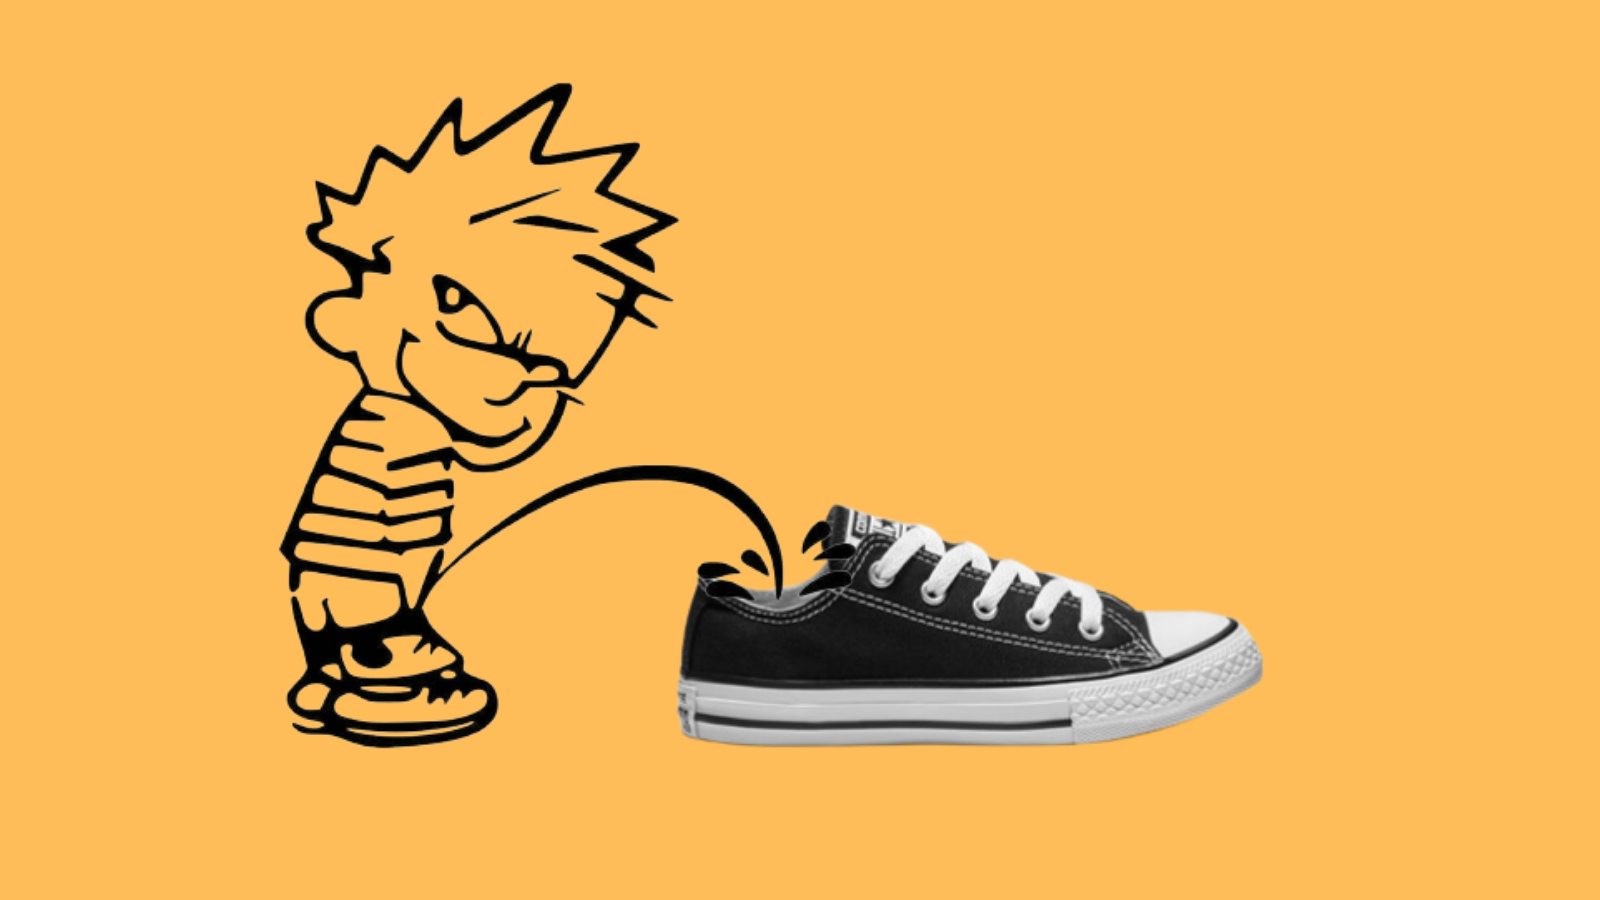 Graphic of kid peeing in a shoe